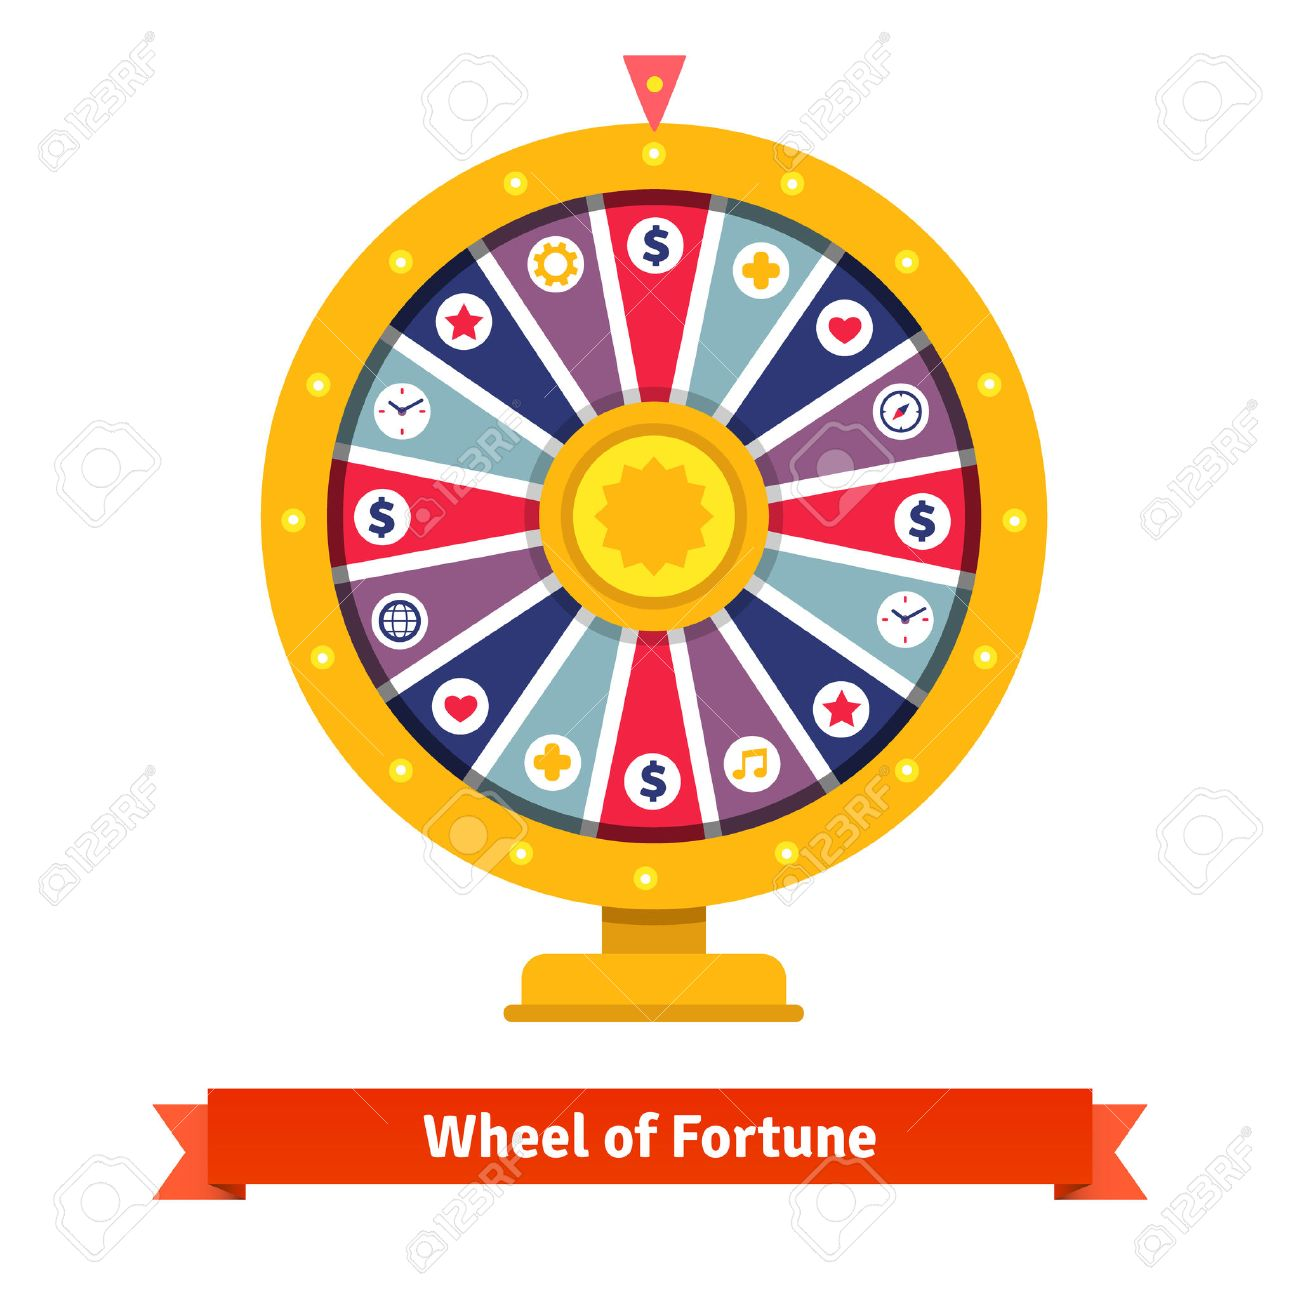 Wheel of fortune with bets icons. Flat style vector illustration isolated on white background. - 47493677